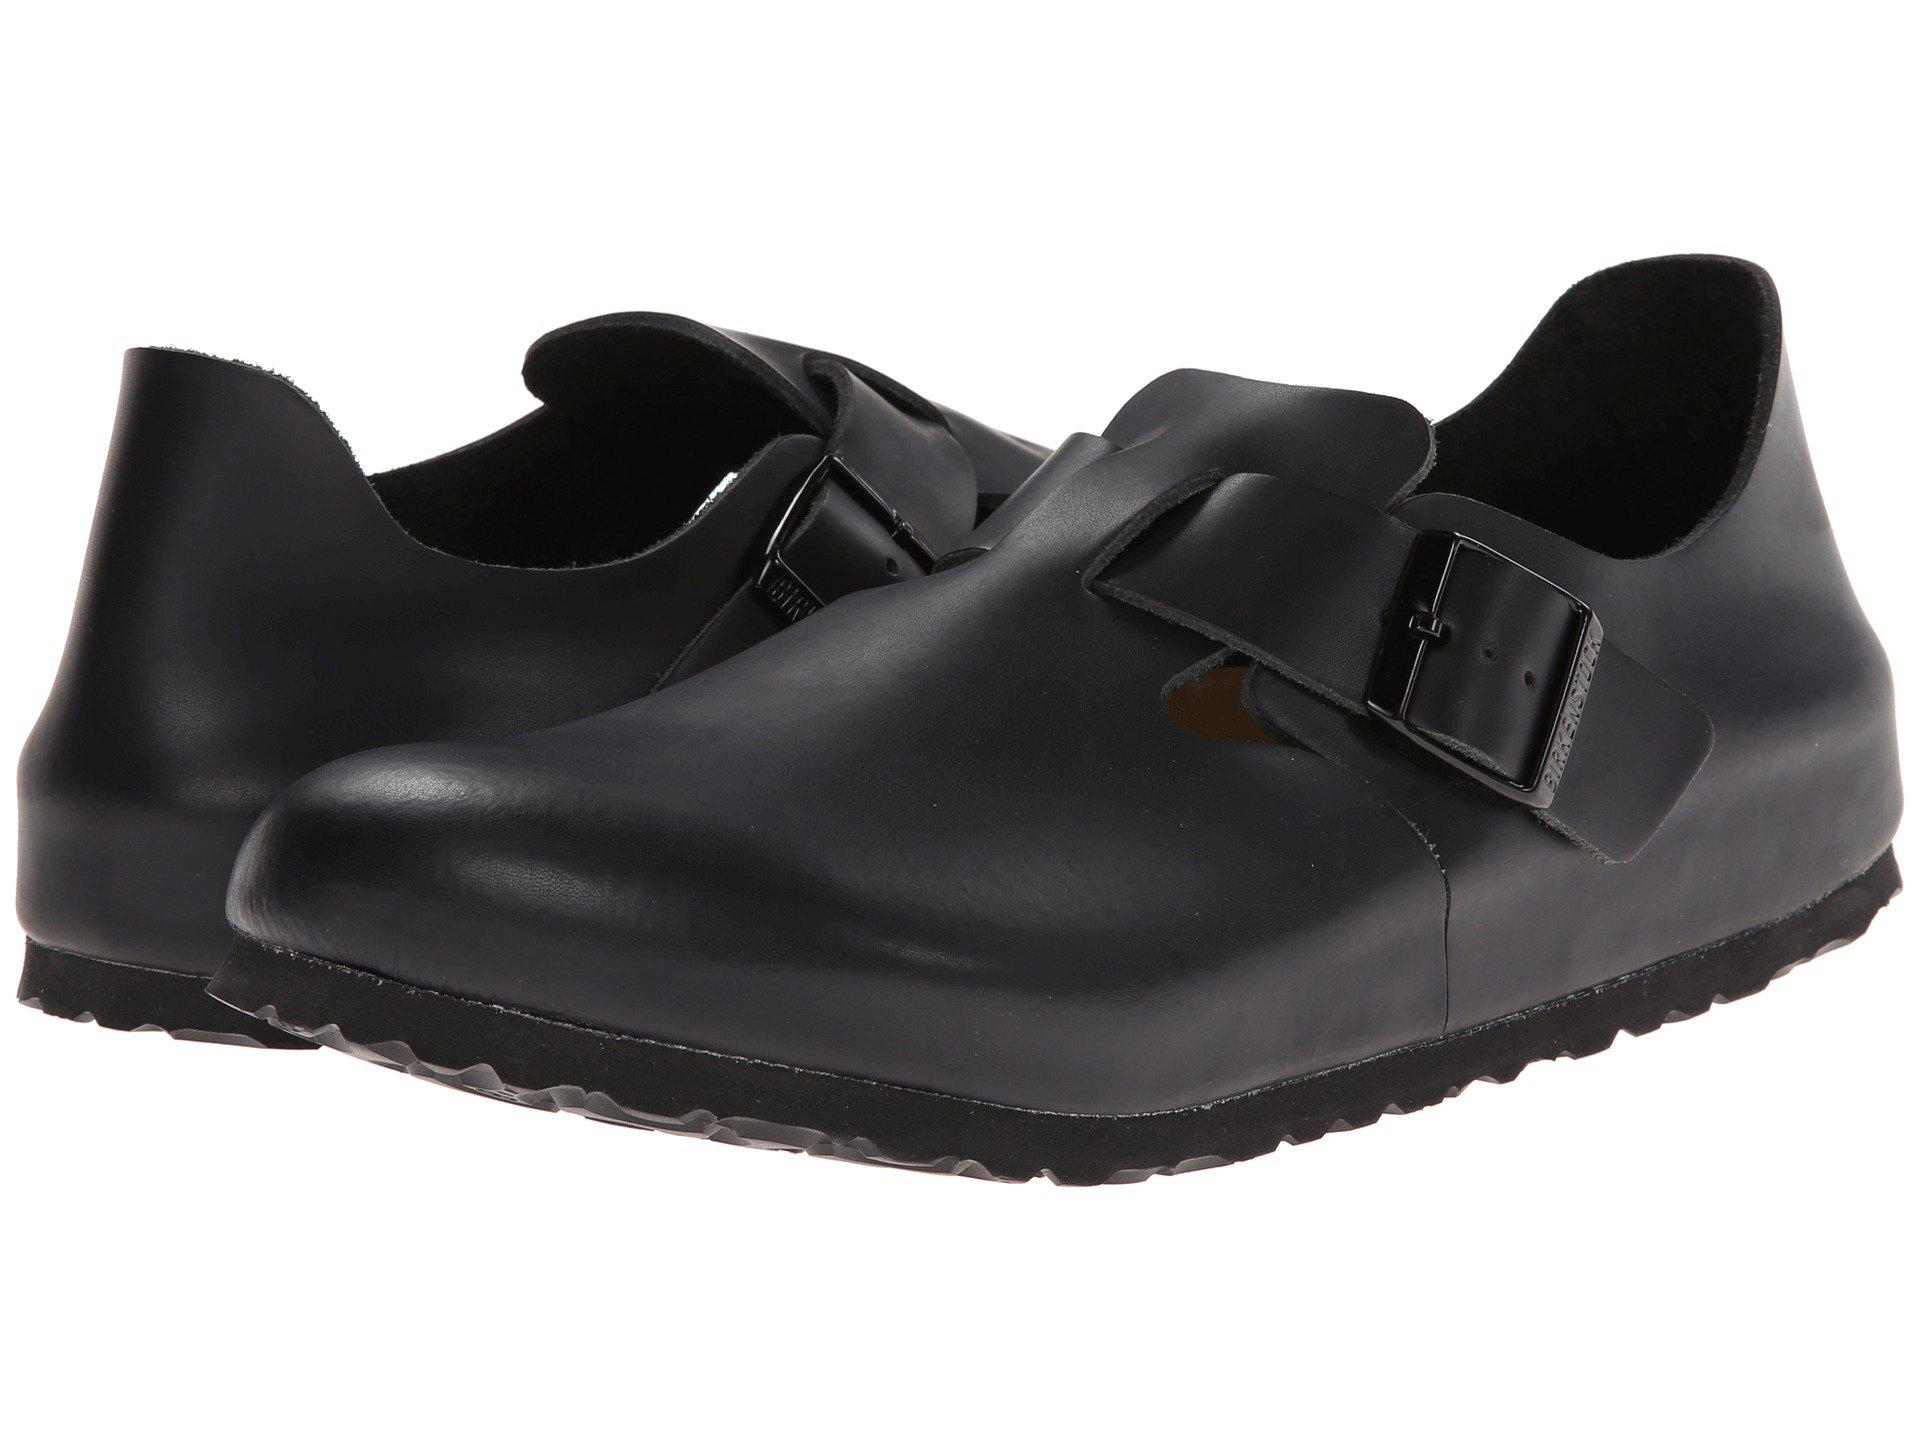 d04887620e34 Lyst - Birkenstock London Soft Footbed (hunter Black Leather) Shoes ...